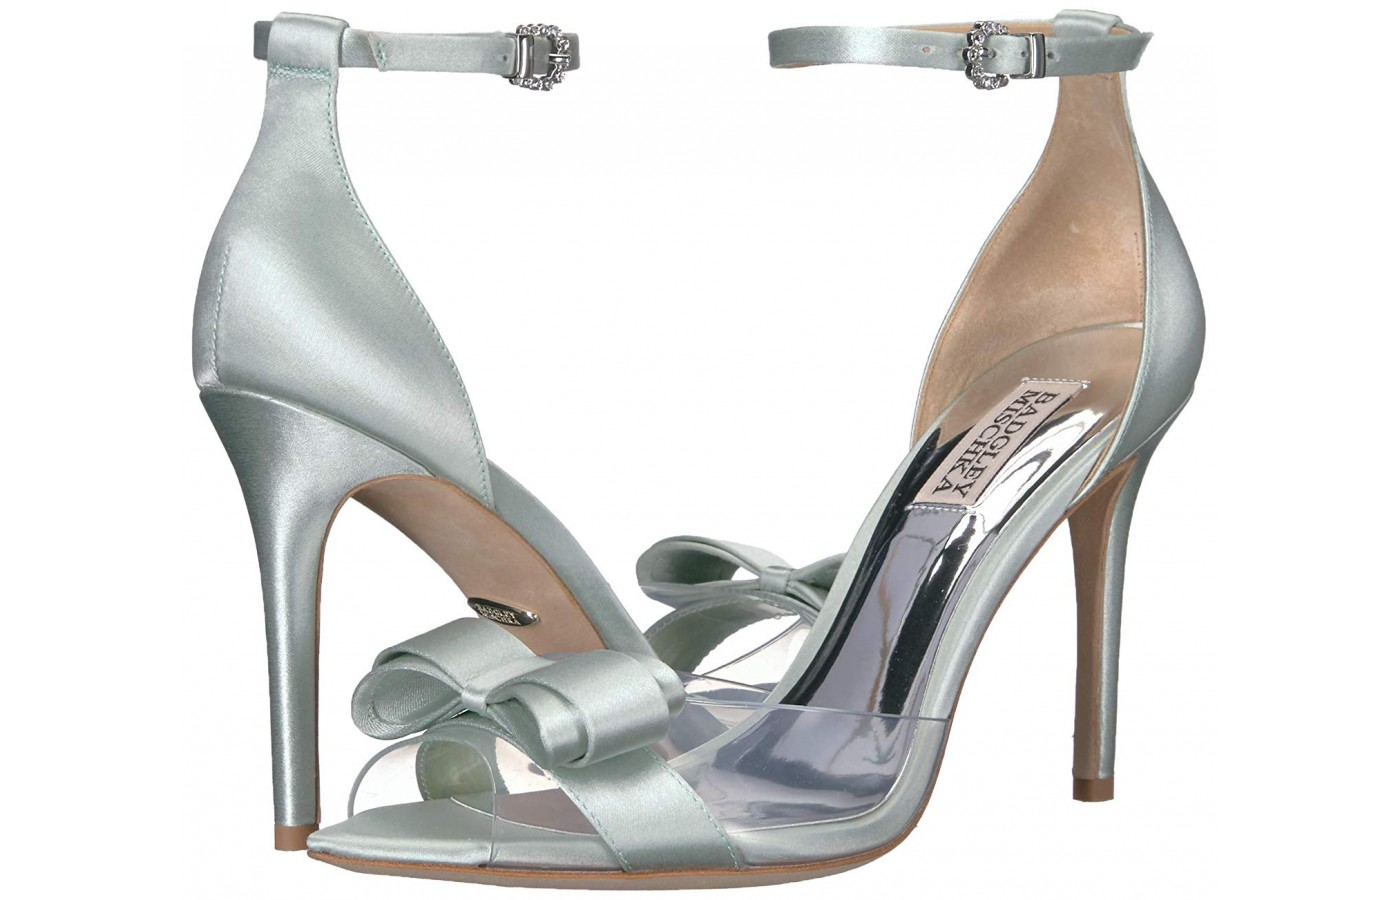 Badgley Mischka Lindsay pair